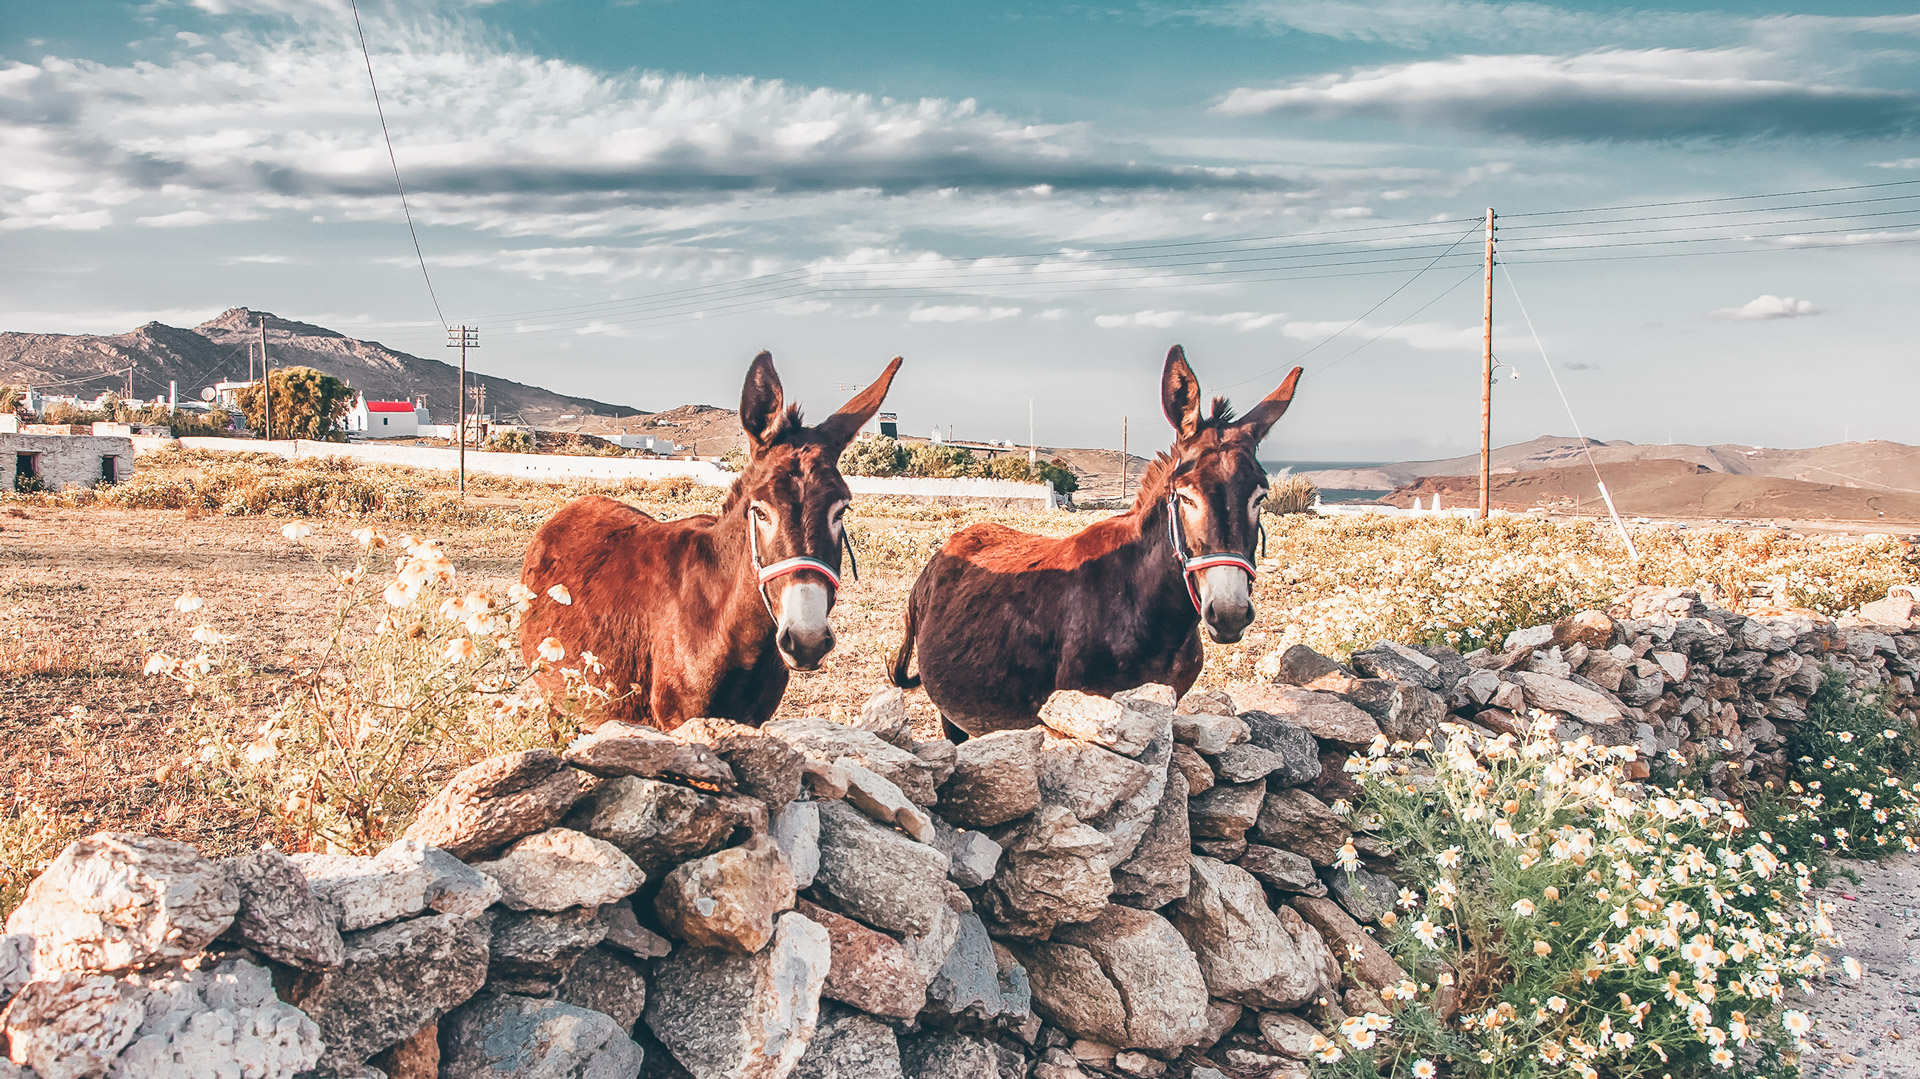 Two donkeys on the field with wildflowers, Mykonos